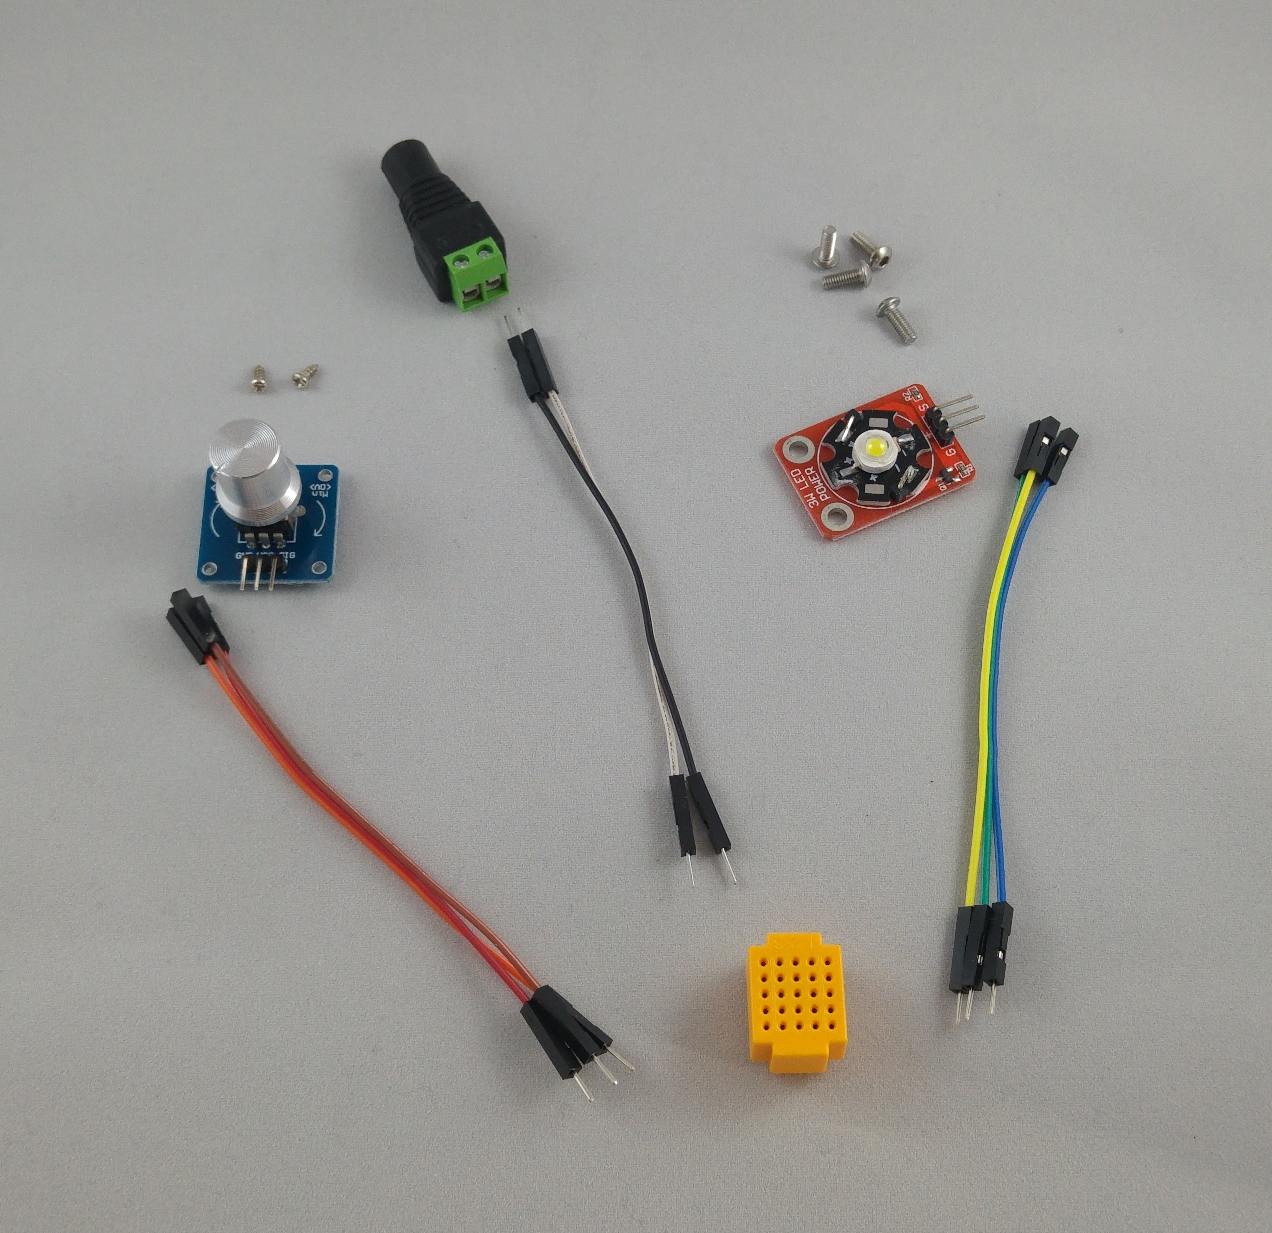 Intoduction To Electronics The Hexa Lamp Makit Home Wiring Materials List Of